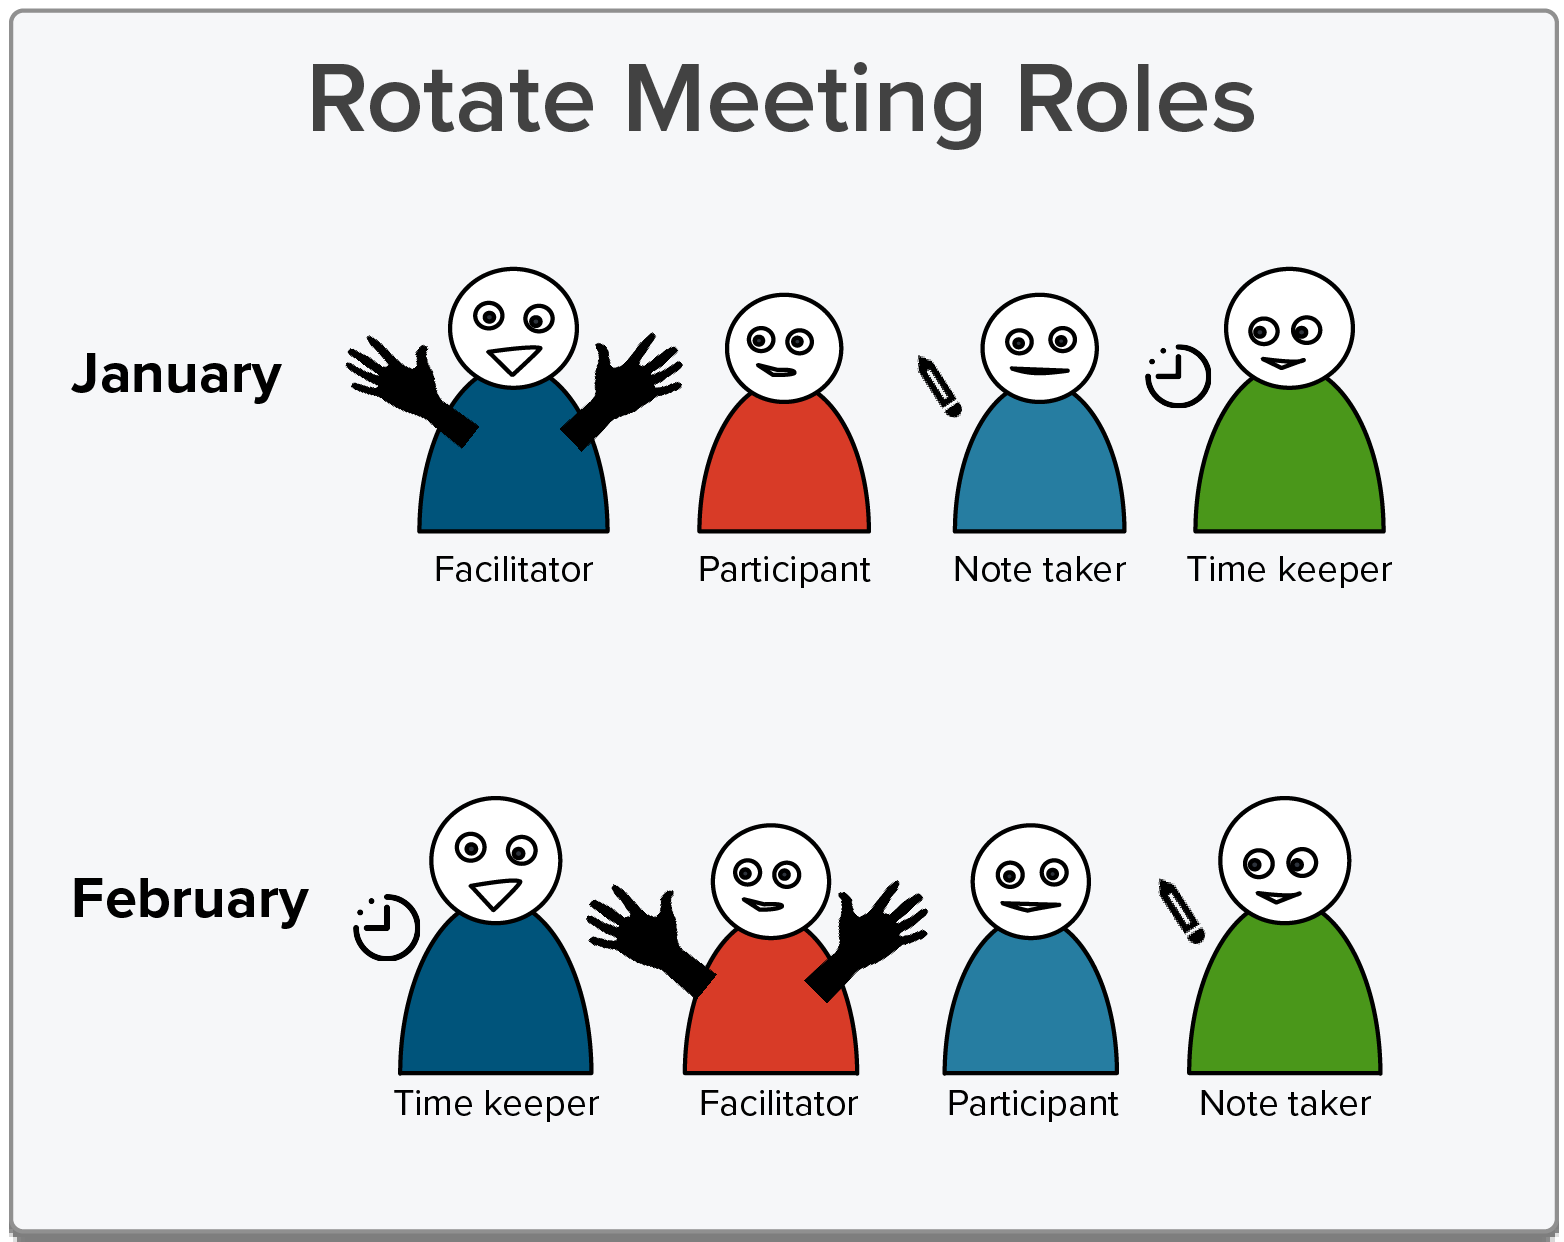 Trade meeting roles each month